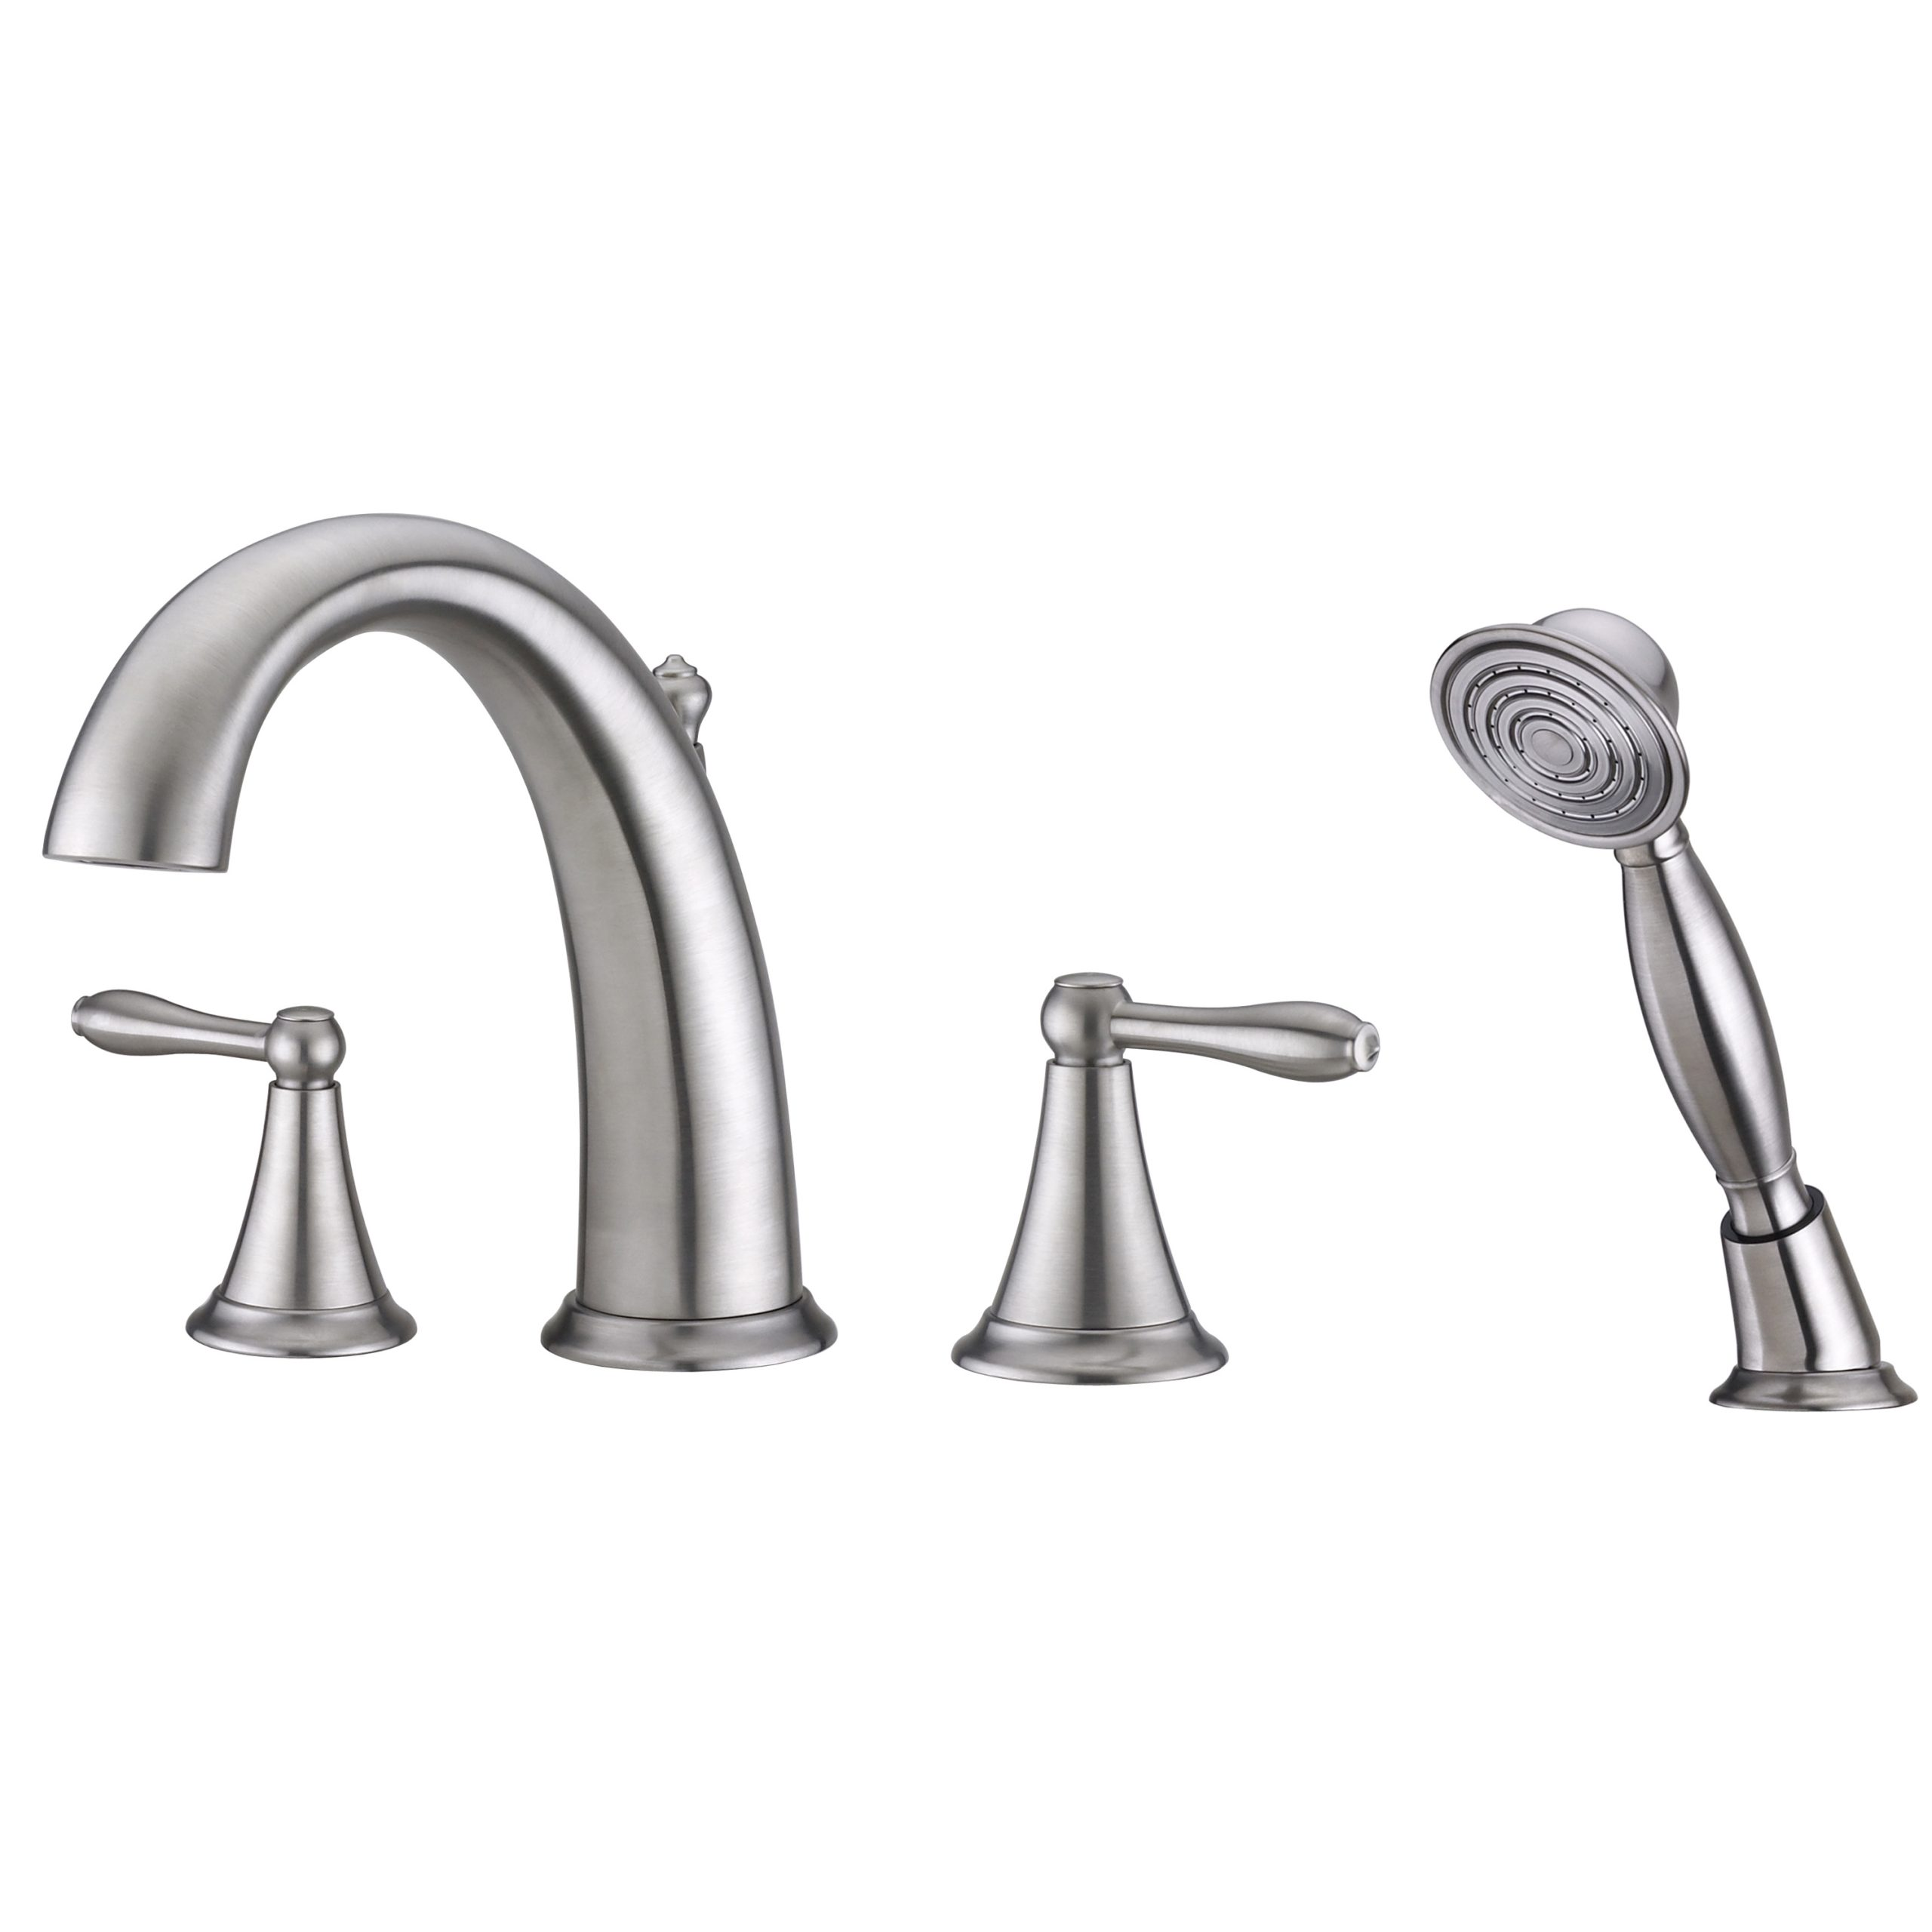 Contour Collection Roman Tub Faucet With Hand Shower